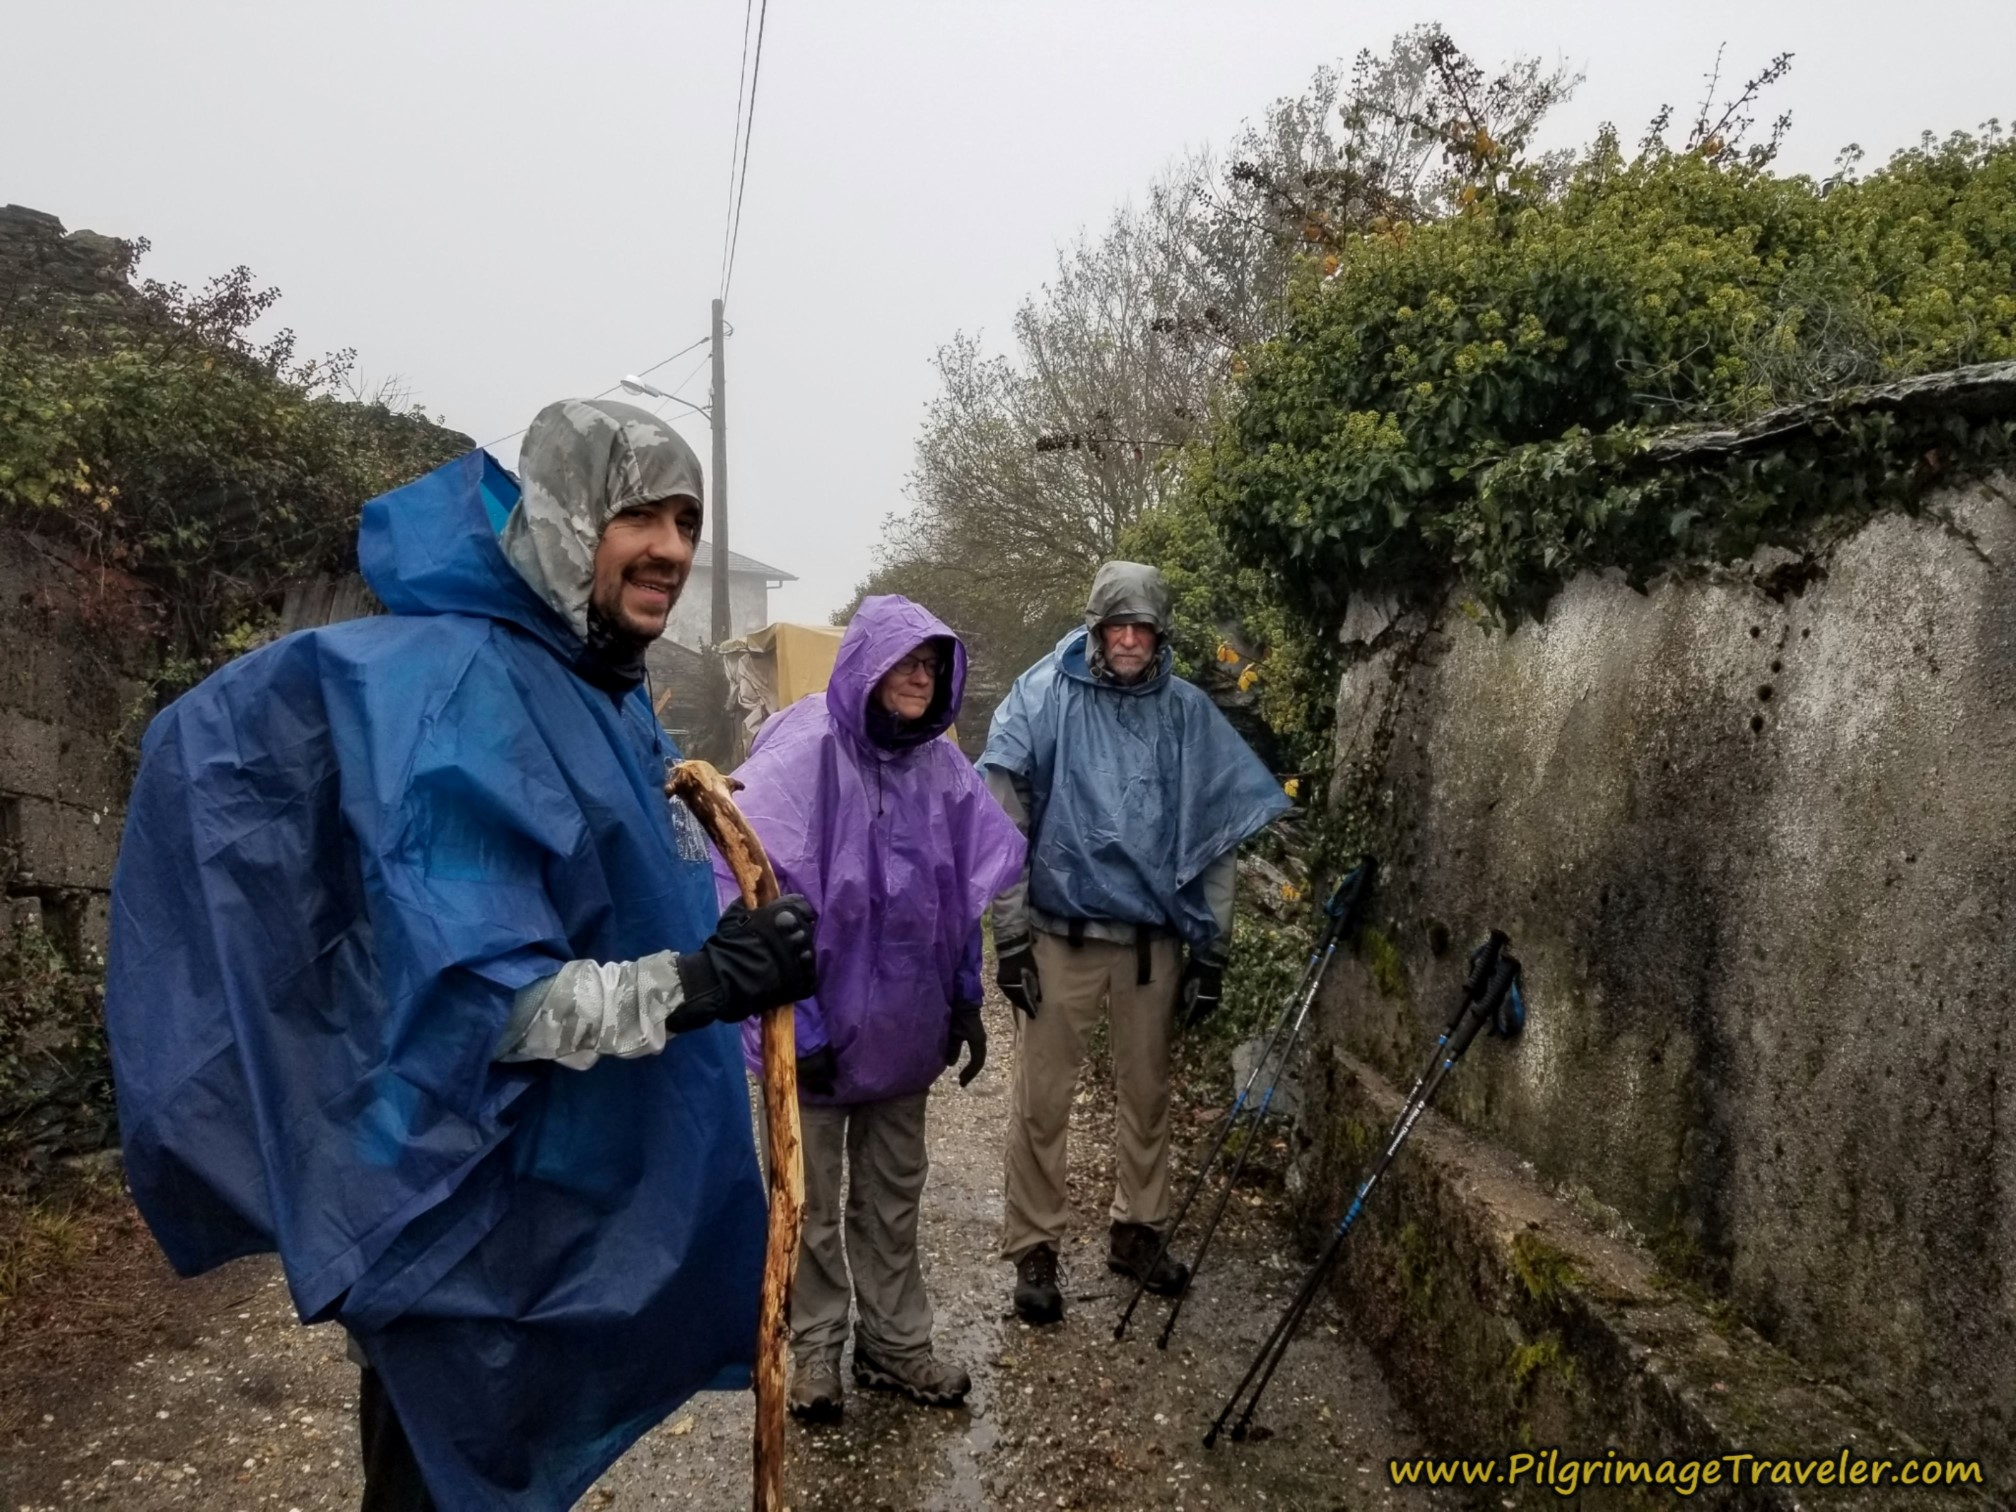 Miguel, Nadine and Norm Attempt to Look Happy on the Camino Sanabrés from A Gudiña to A Venda da Capela